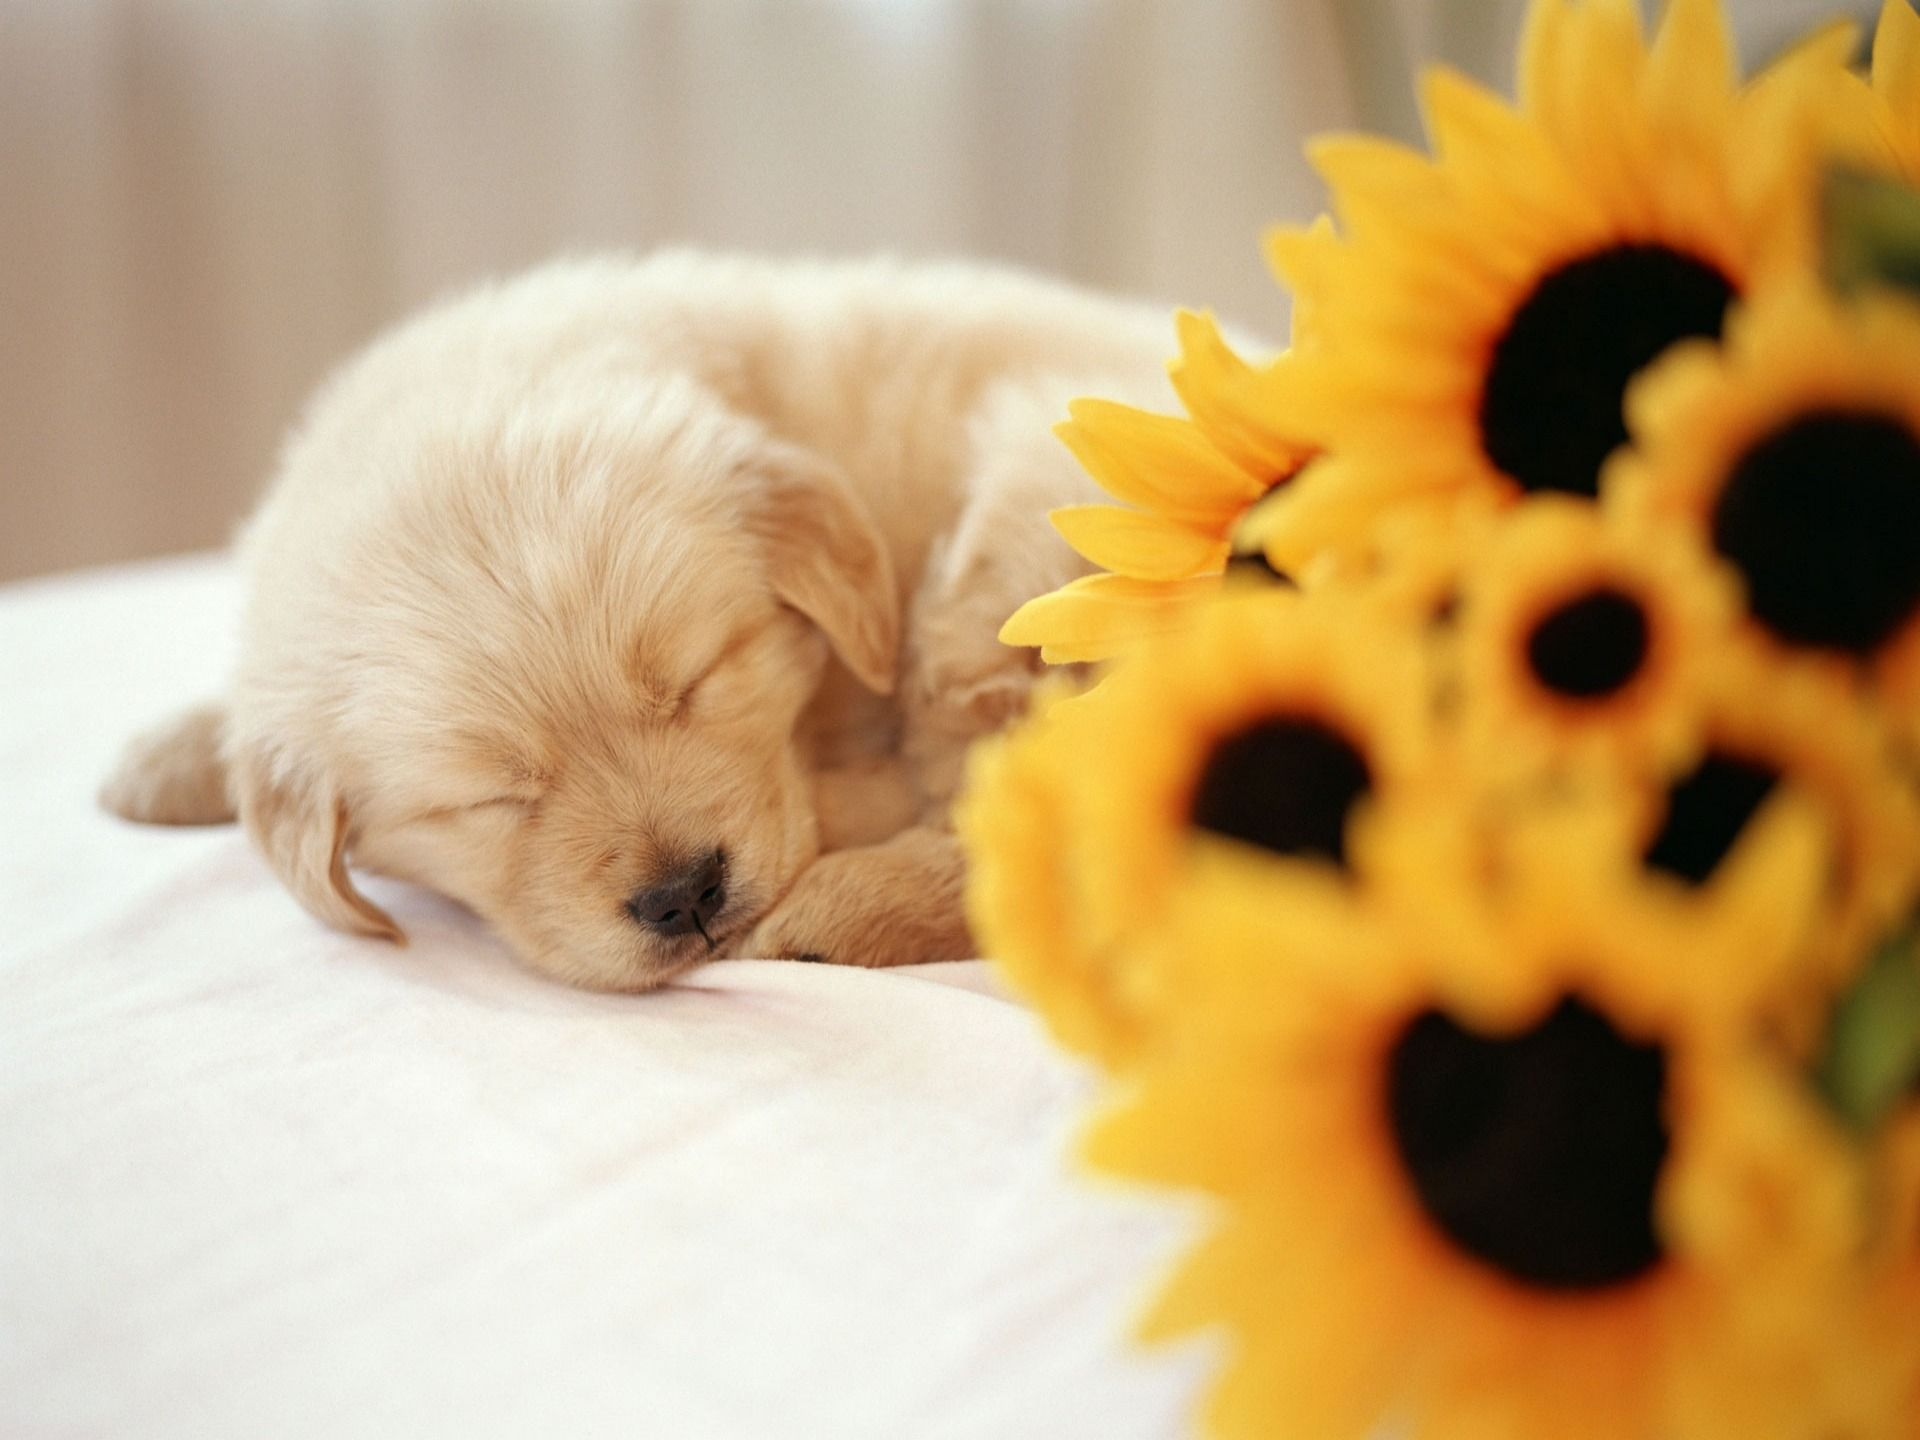 puppy wallpaper dogs animals wallpapers for free download about | 3d